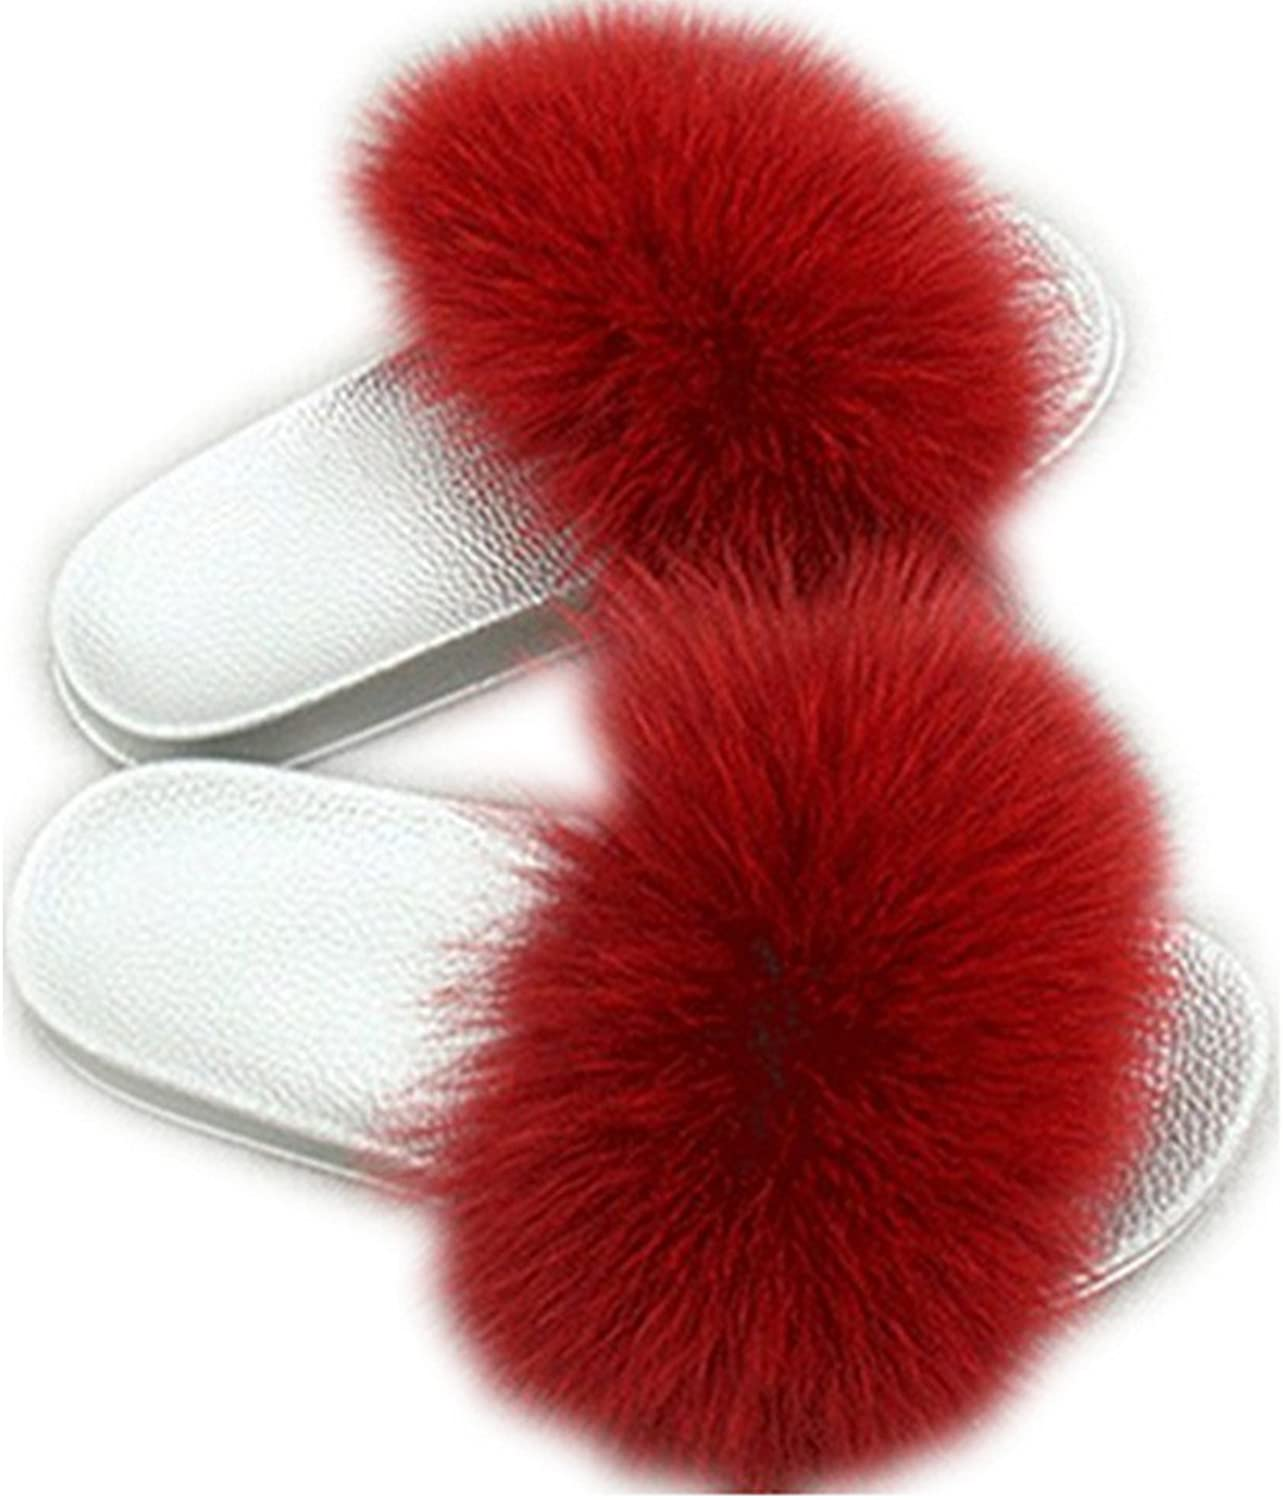 QMFUR Women Real Fox Fur Slippers Fashion Slides Flat Silver Soft Summer shoes for Girls (12, Wine red)